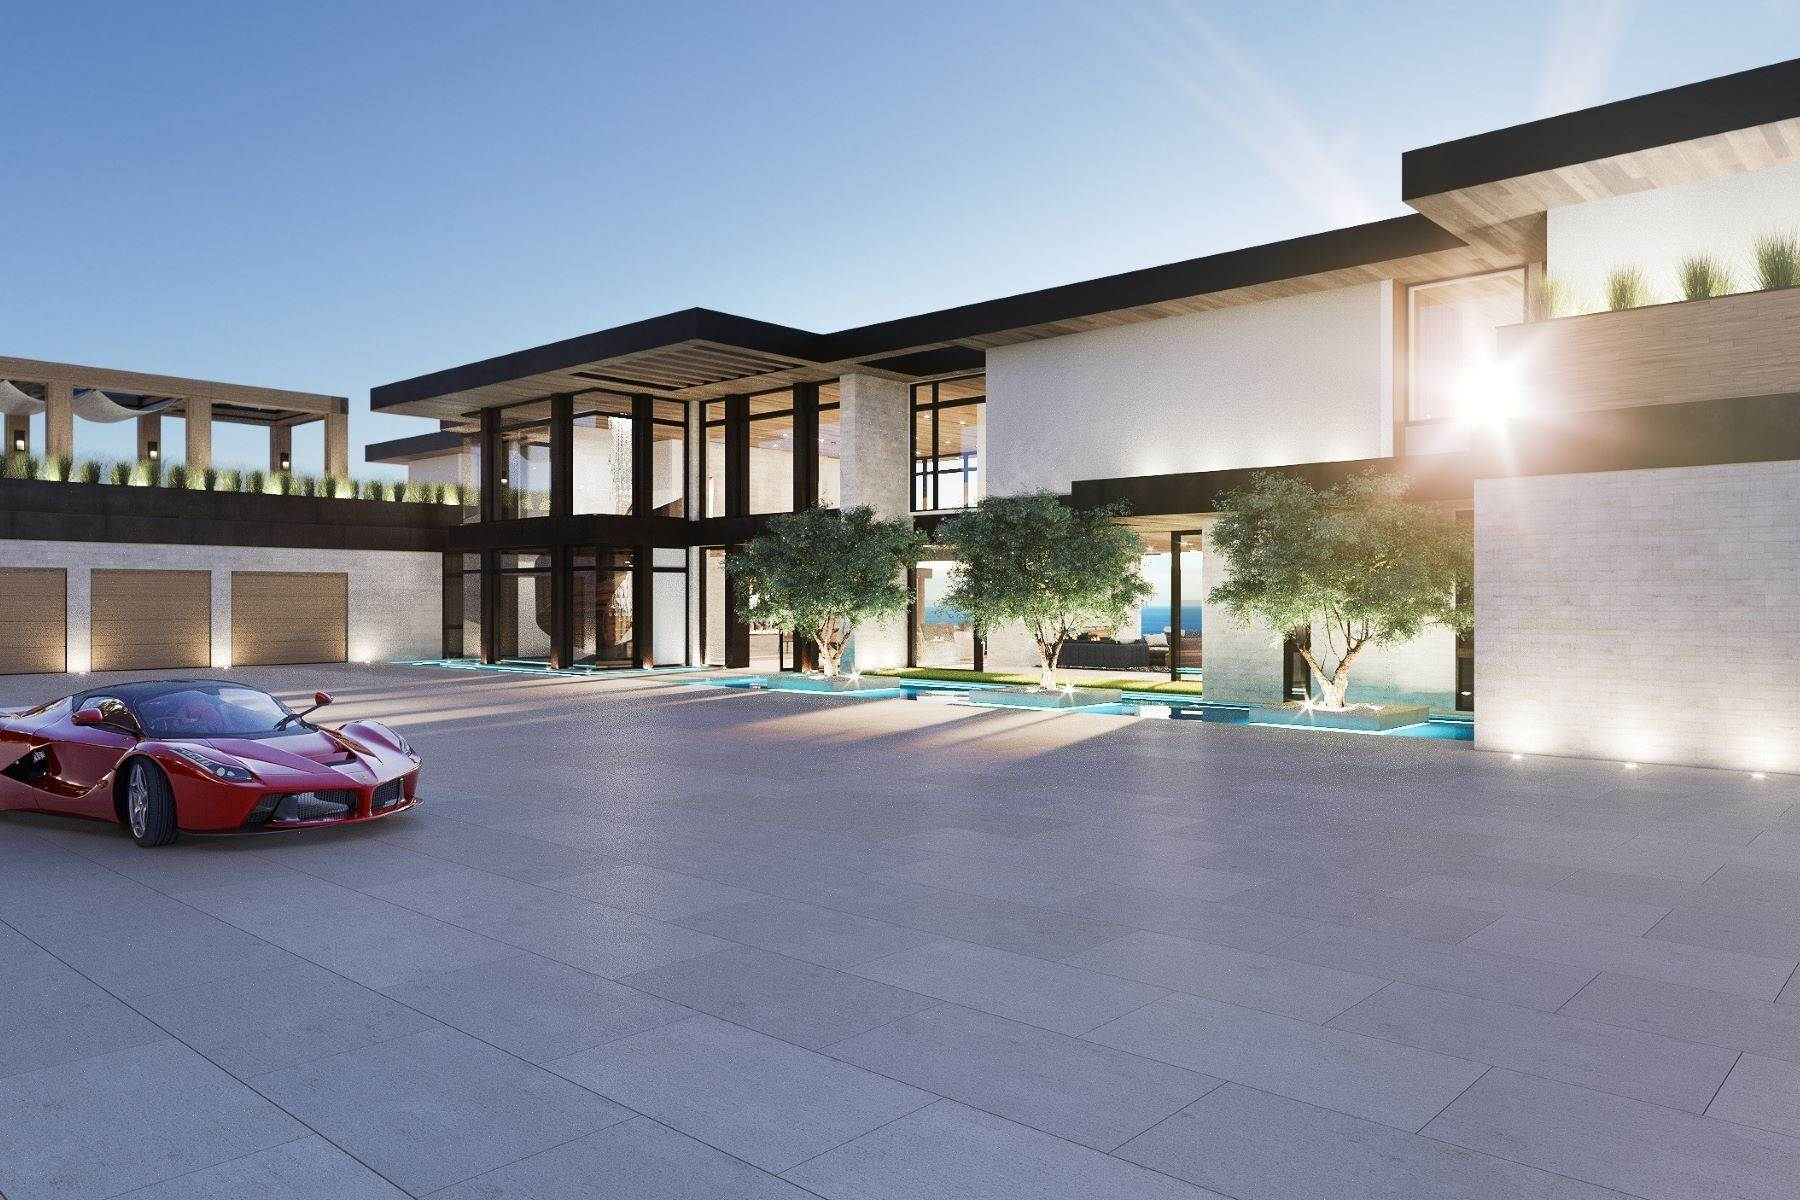 Single Family Homes for Active at New Construction 3093 Sweetwater Mesa Rd. Malibu, California 90265 United States